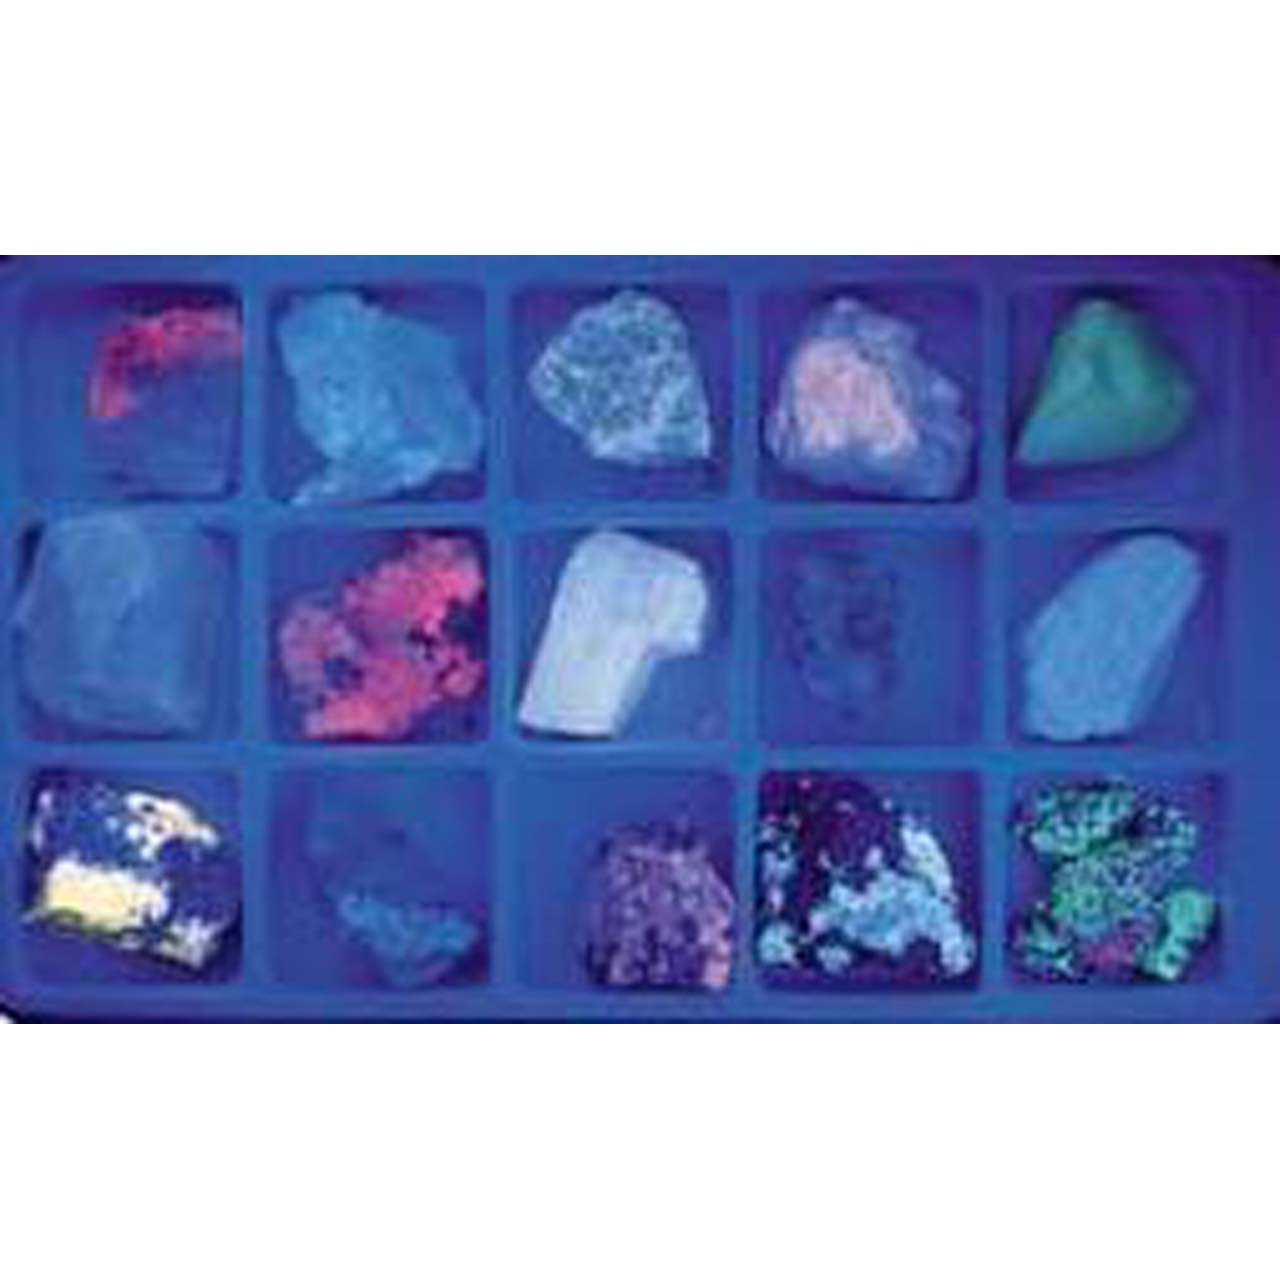 Fluorescent mineral collection, long and short wave